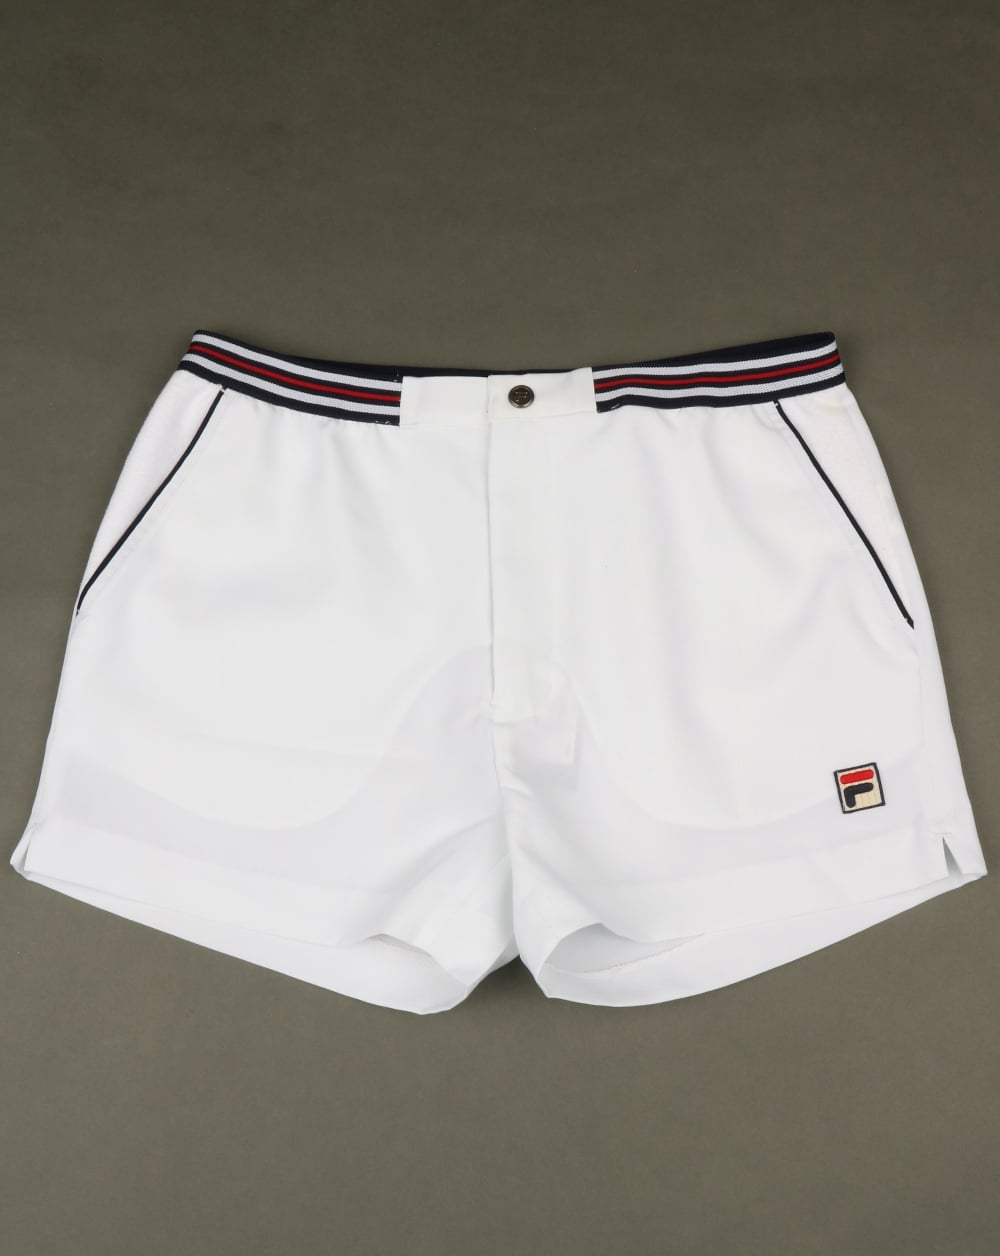 5b42405f3f00 Fila Vintage High Tide 4 Shorts White,piping,retro,striped,mens